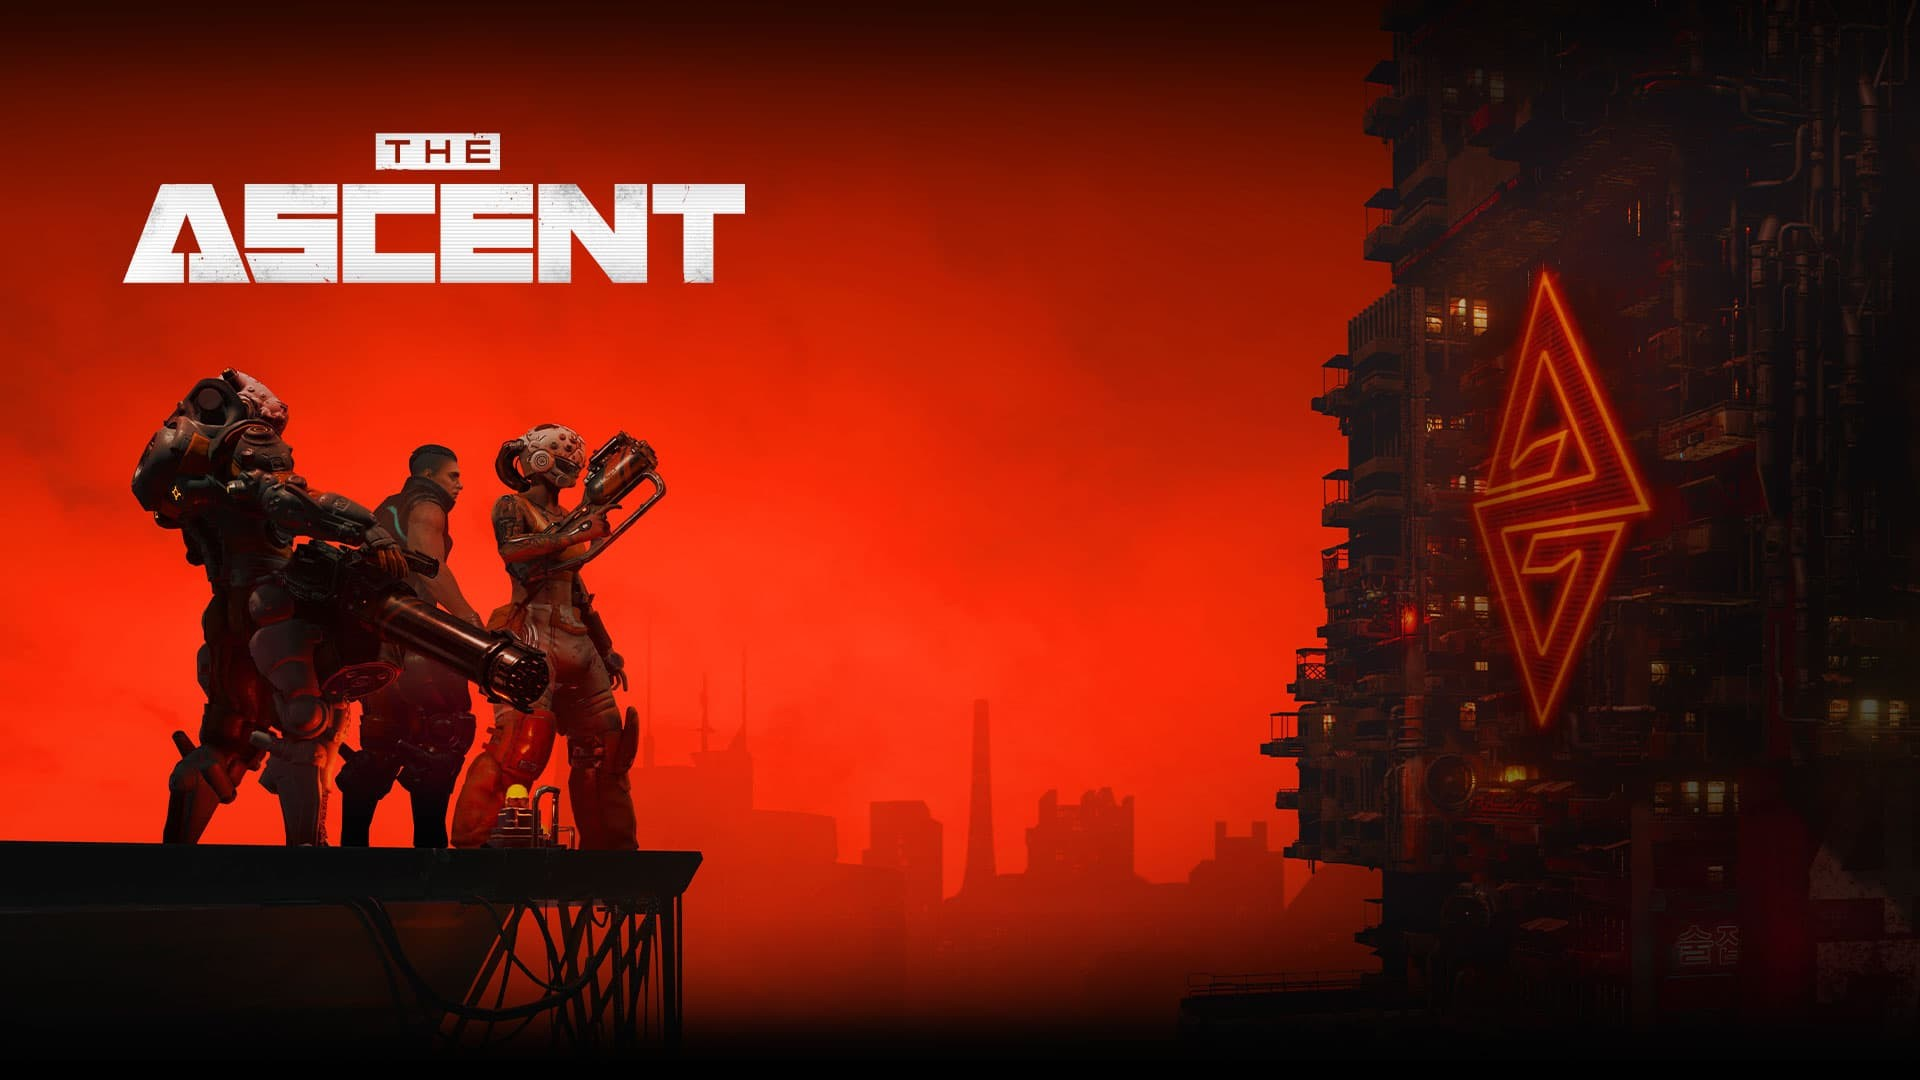 The ascent poster con logo